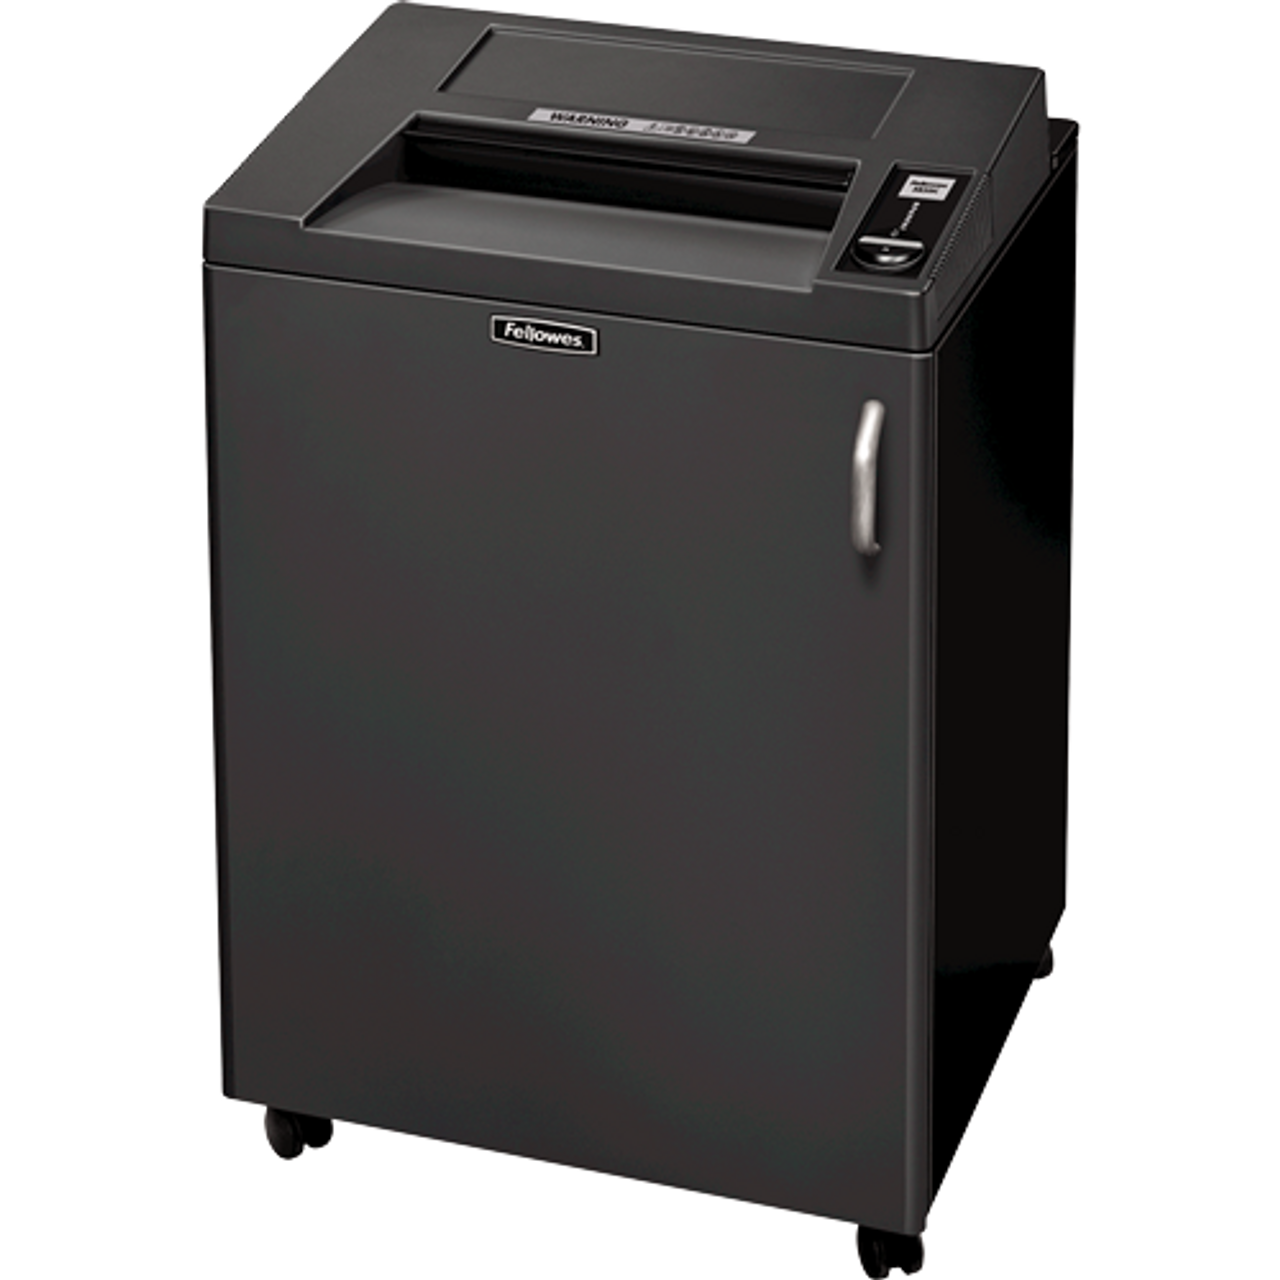 Fortishred 3850C TAA Compliant Cross-Cut Shredder - Black/Dark Silver